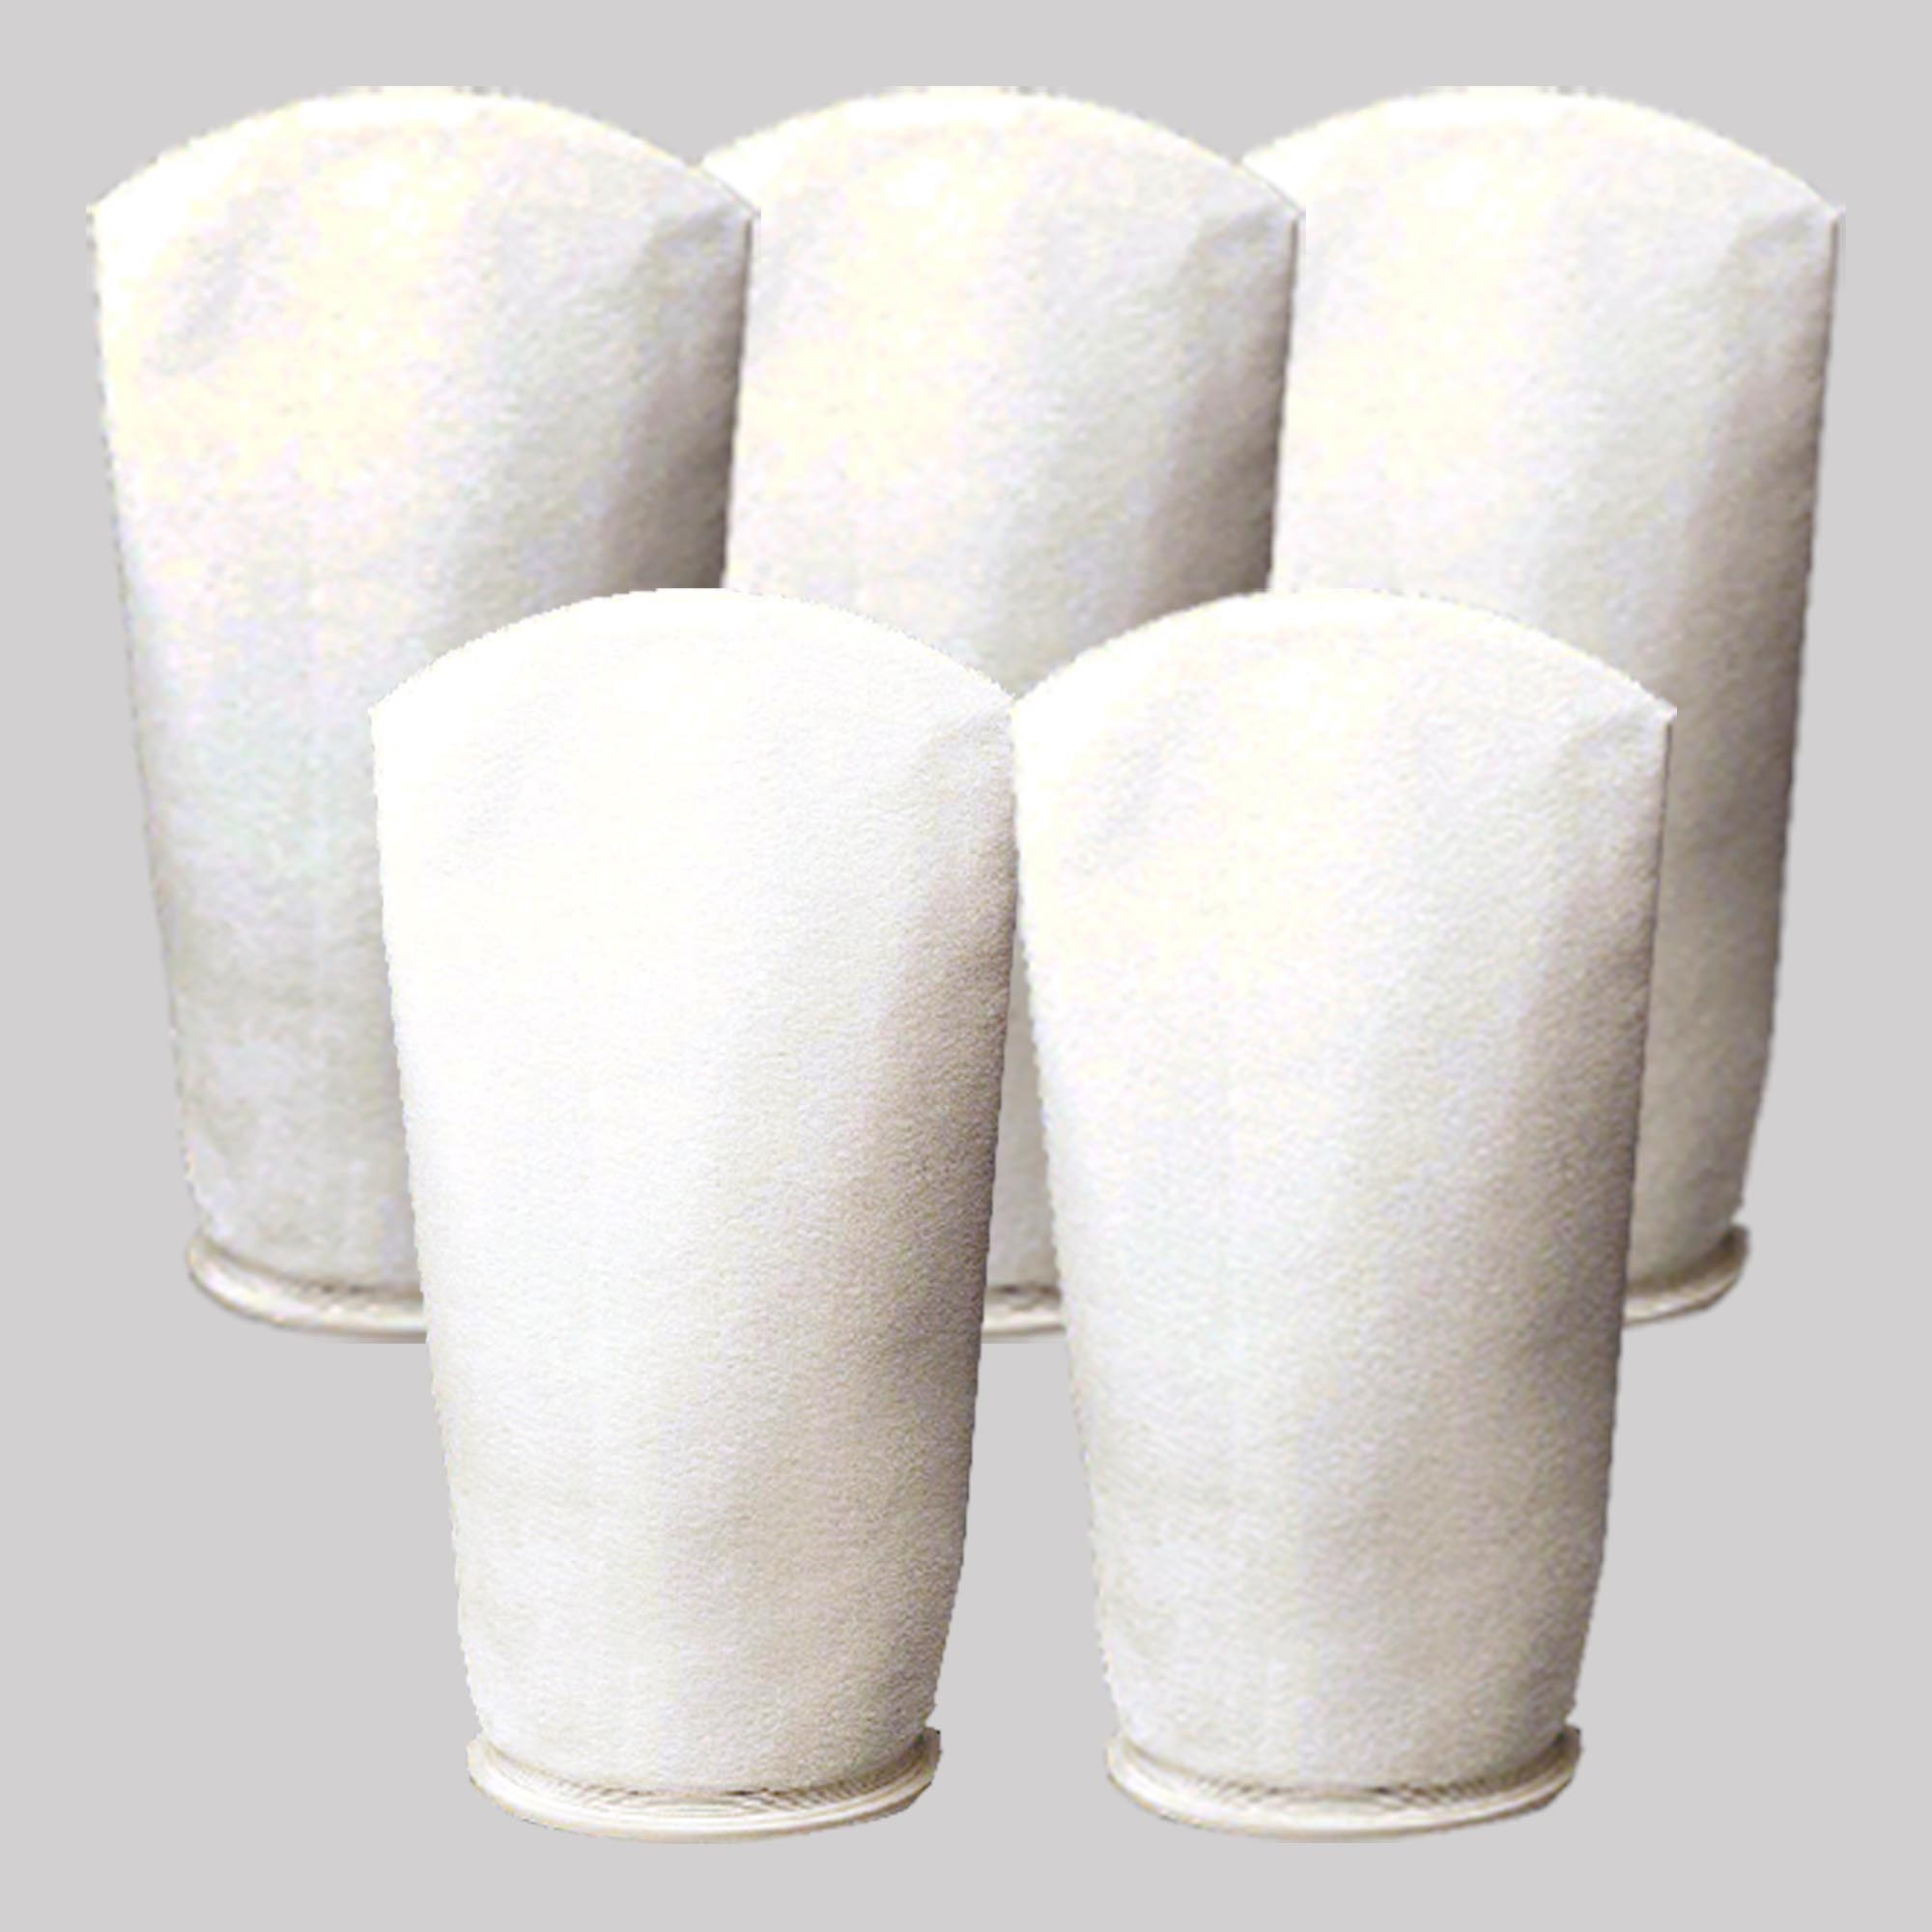 Chip Vac Filter bags are available in 1, 5, 25, 50, 100 and 200 micron mesh to suit the needs of your application.